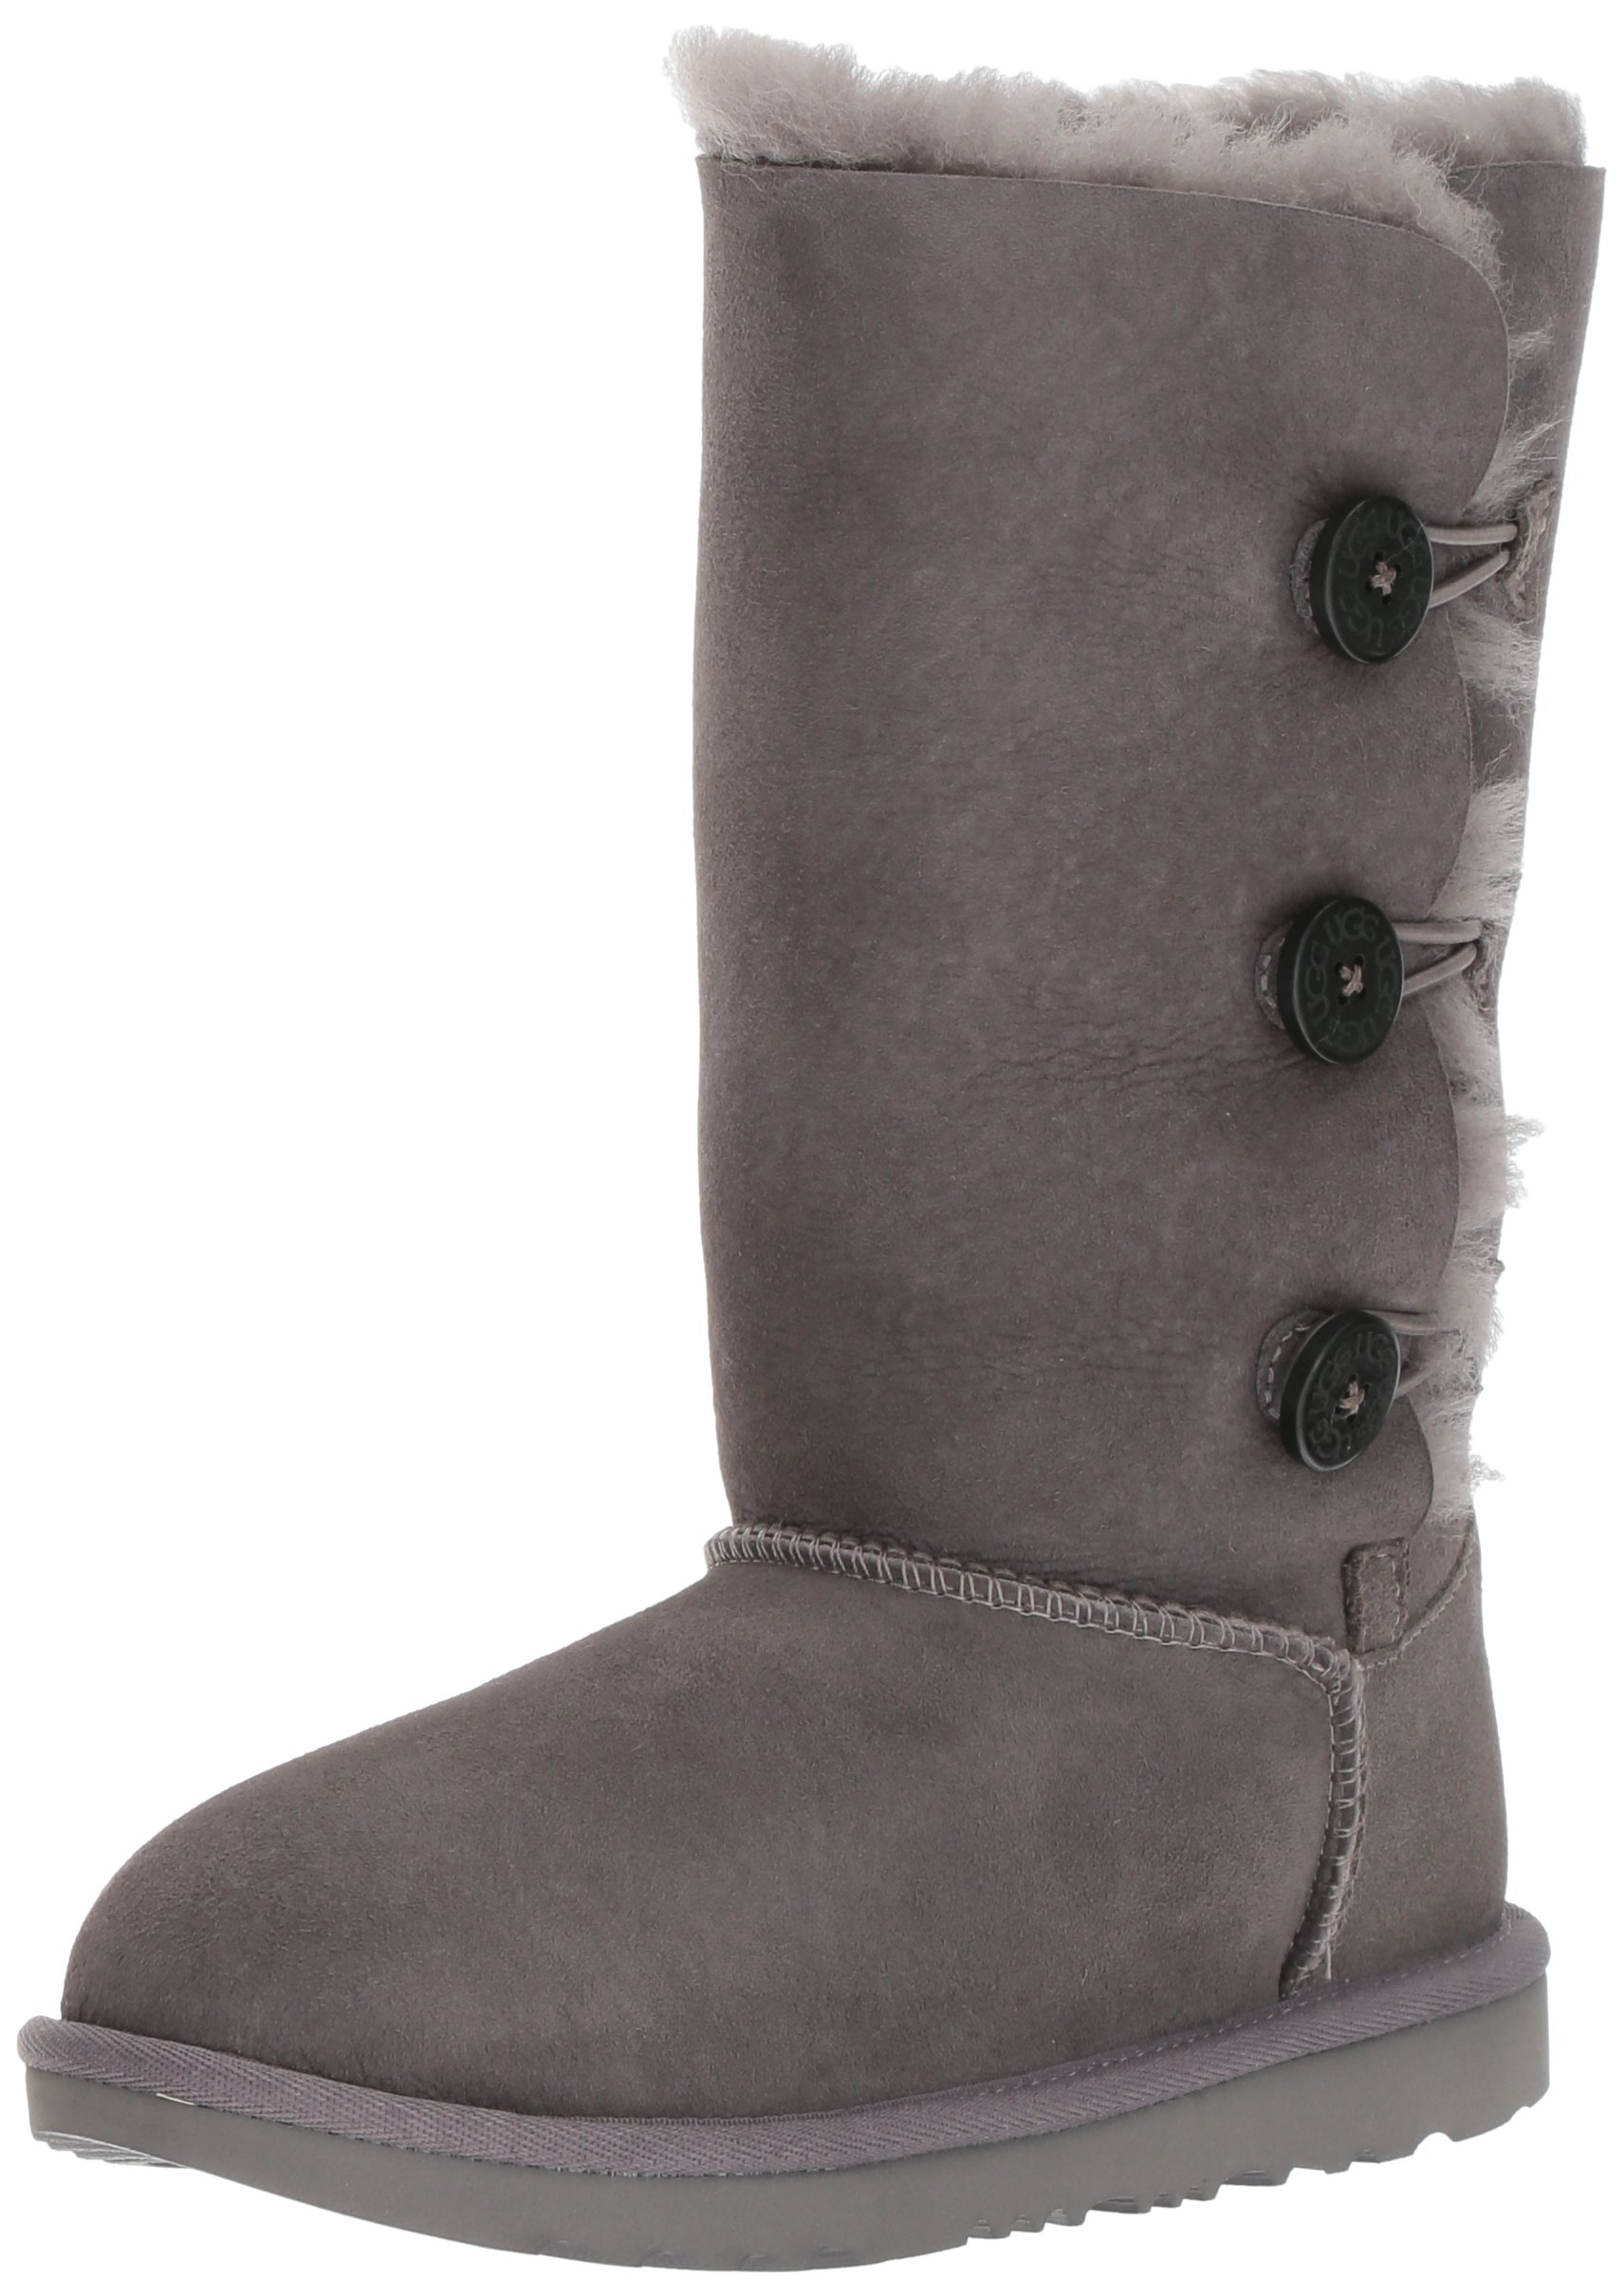 UGG Girls K Bailey Button Triplet II Pull-On Boot, Grey, 3 M US Little Kid